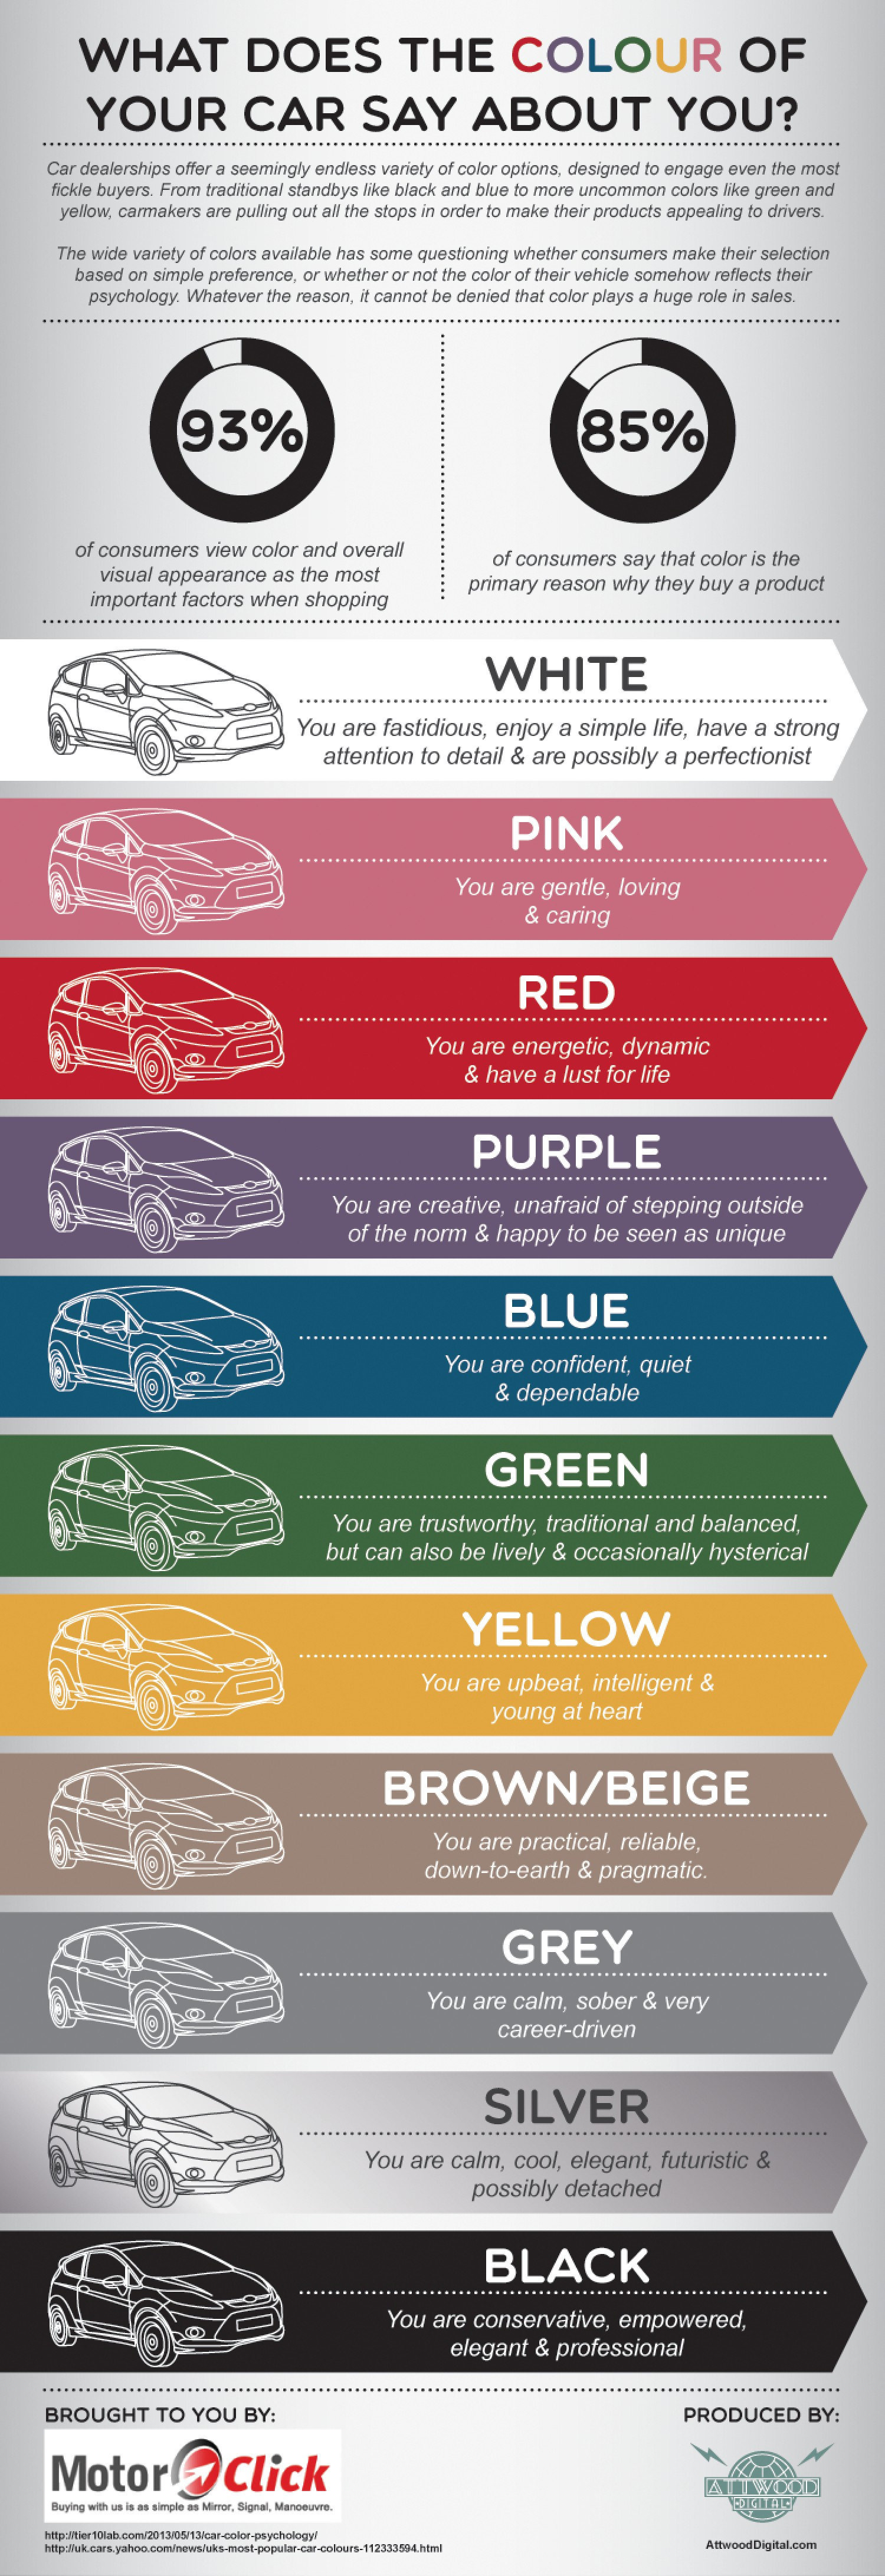 What Does the Color of Your Car Say About You?